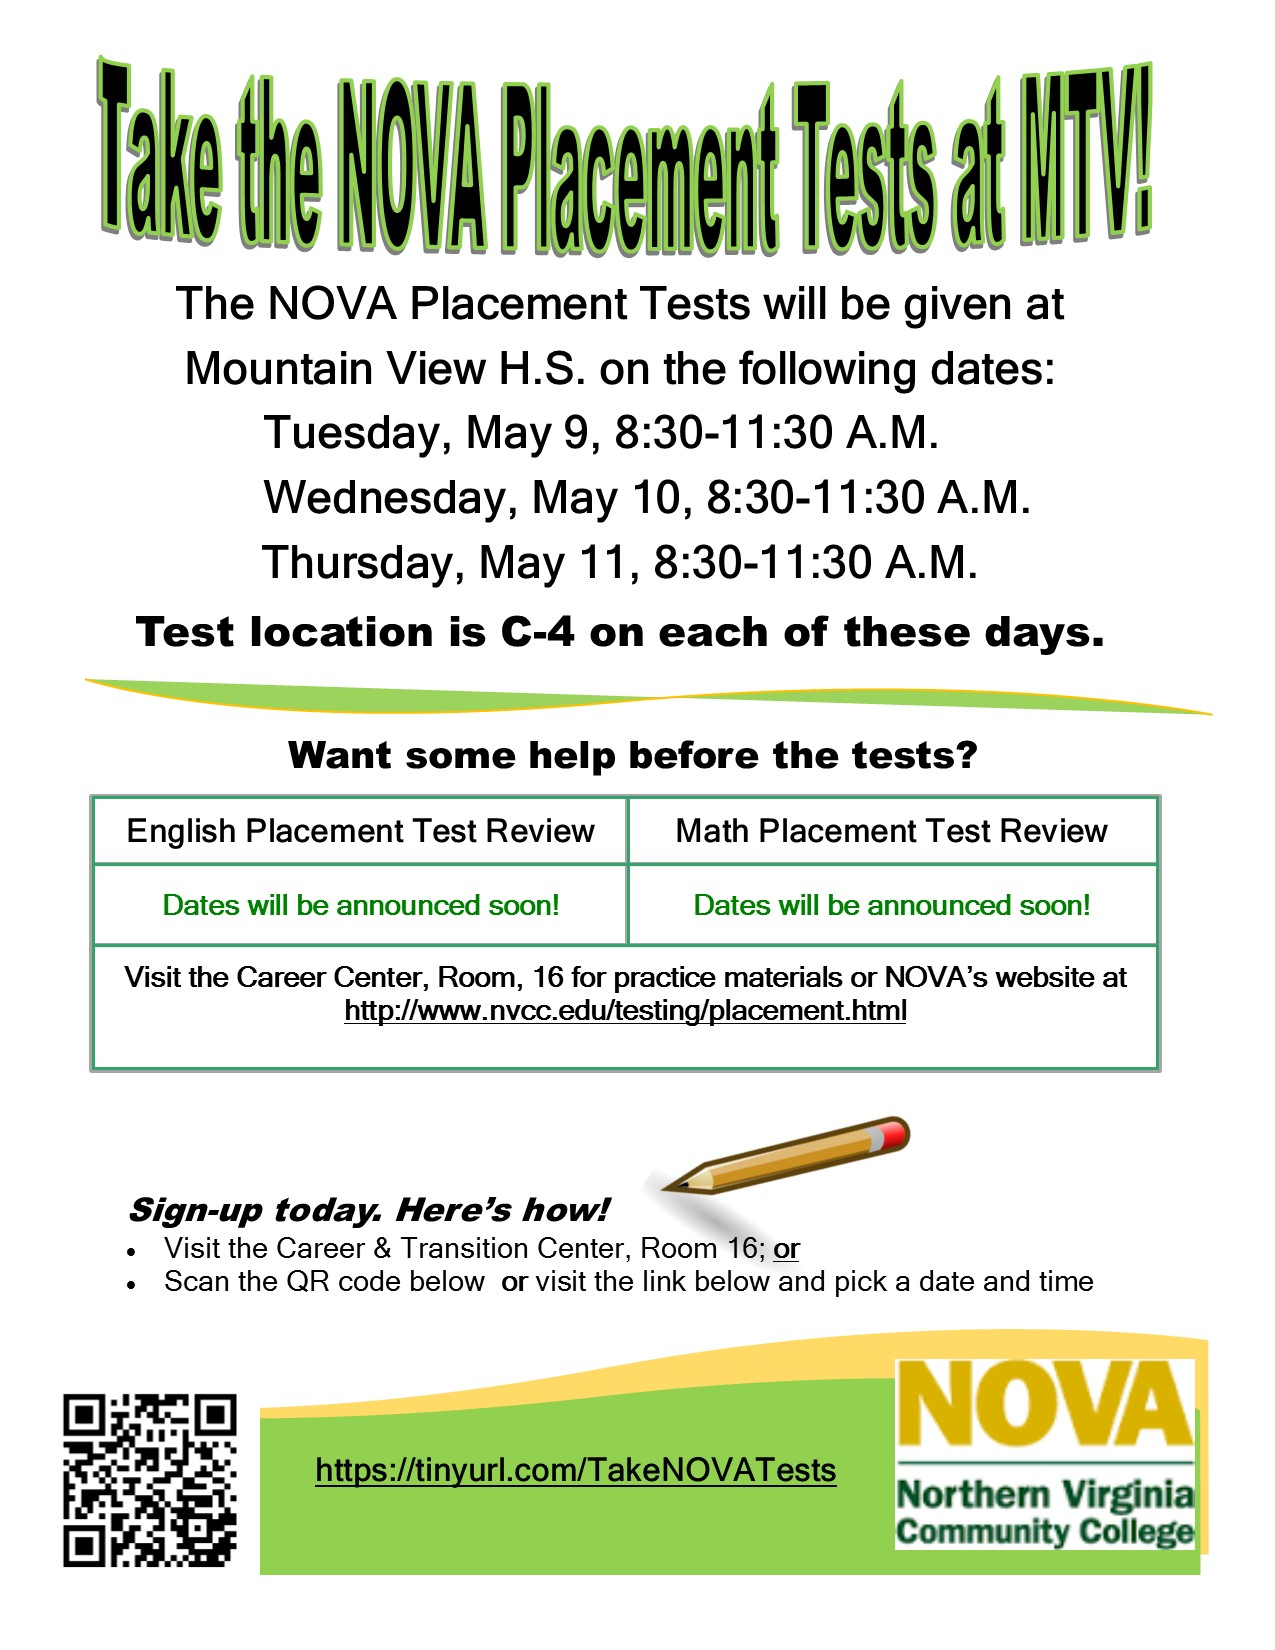 Mountain View Mirror : Take the NOVA Placement Tests May 9-11 at MTV!